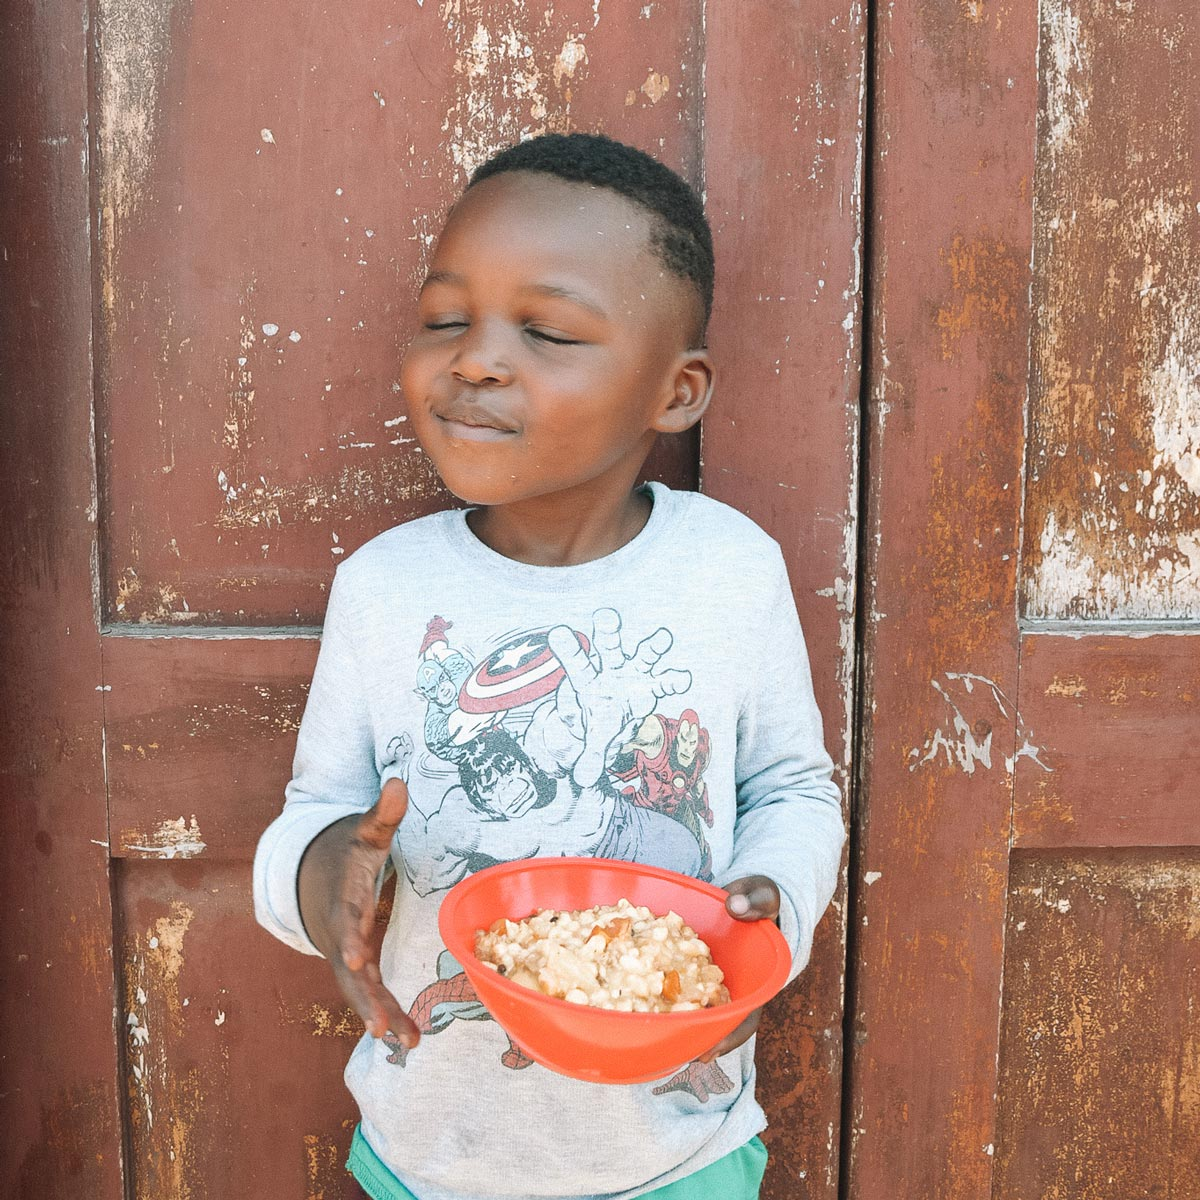 south african boy smiling over bowl of fresh and nutritious food